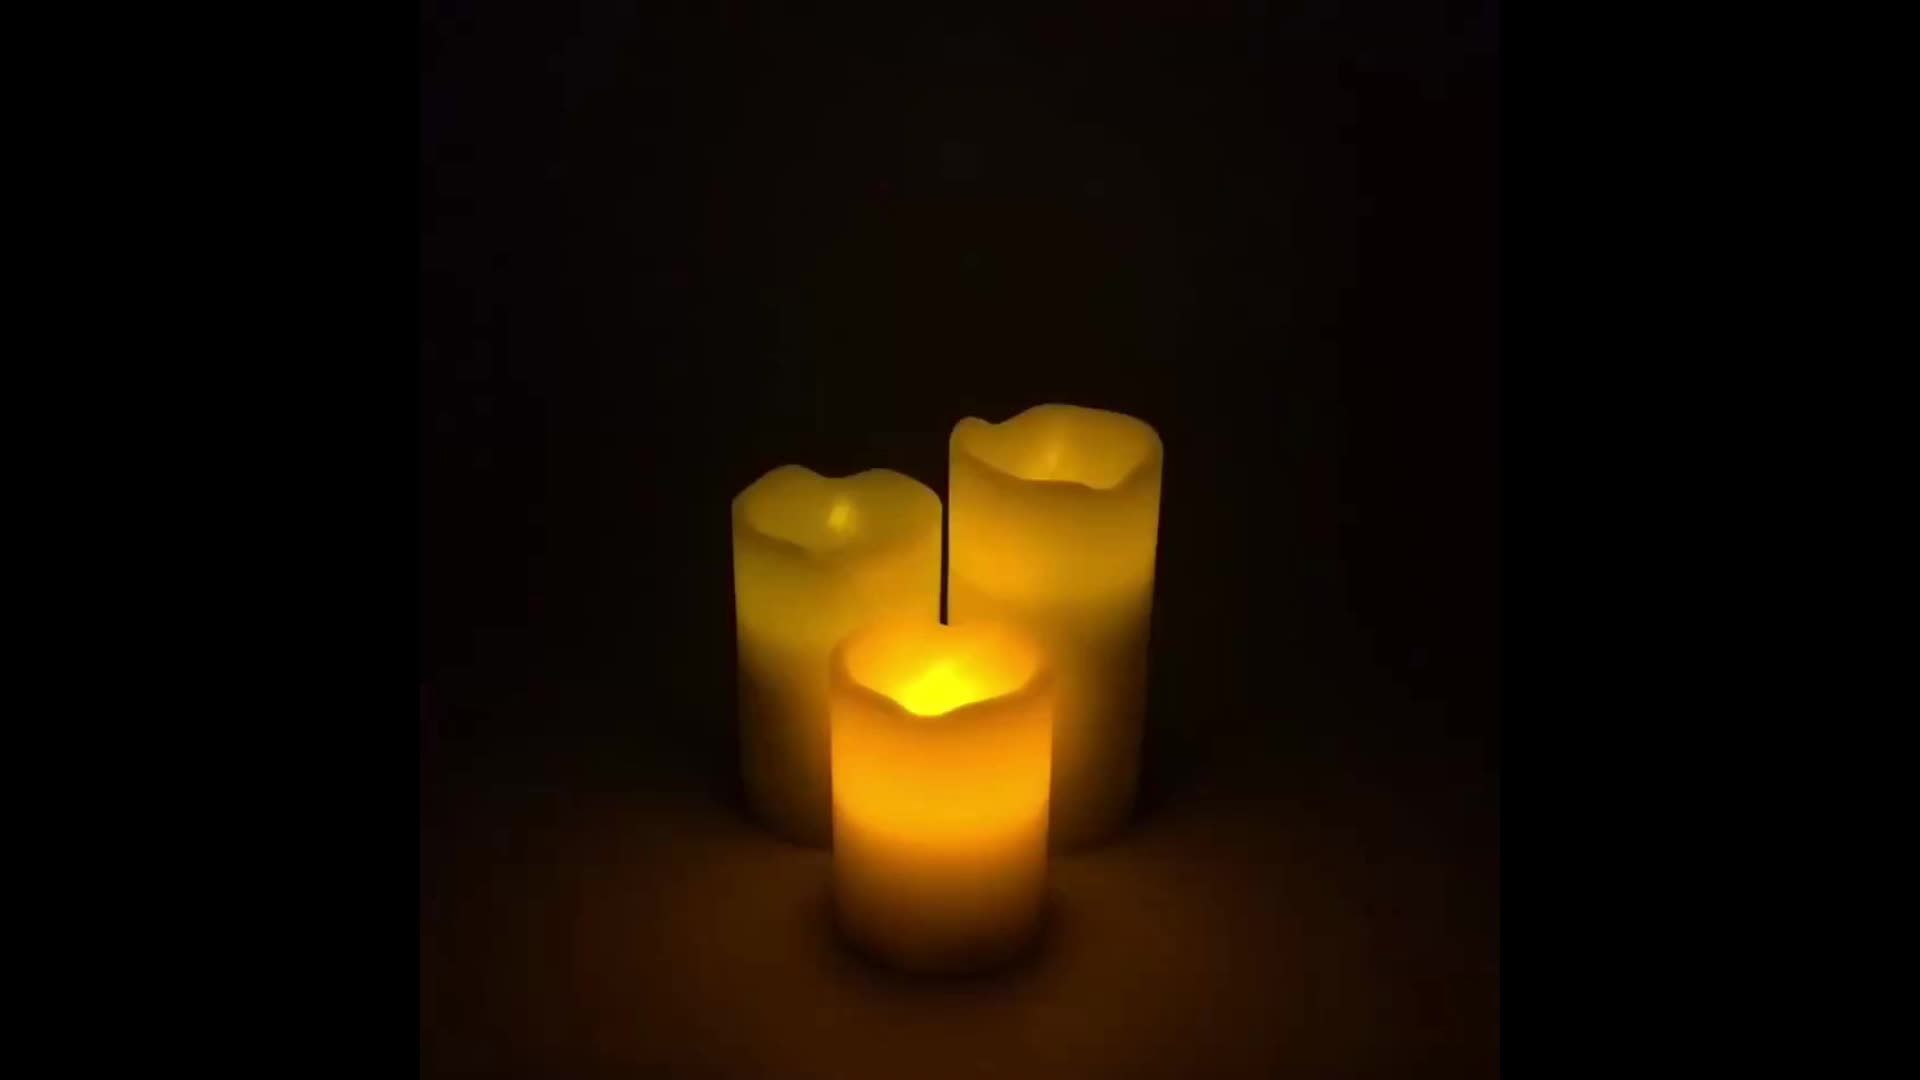 Good Quality Led Christmas Tall Pillar Scented Candles In Bulk With Remote Control